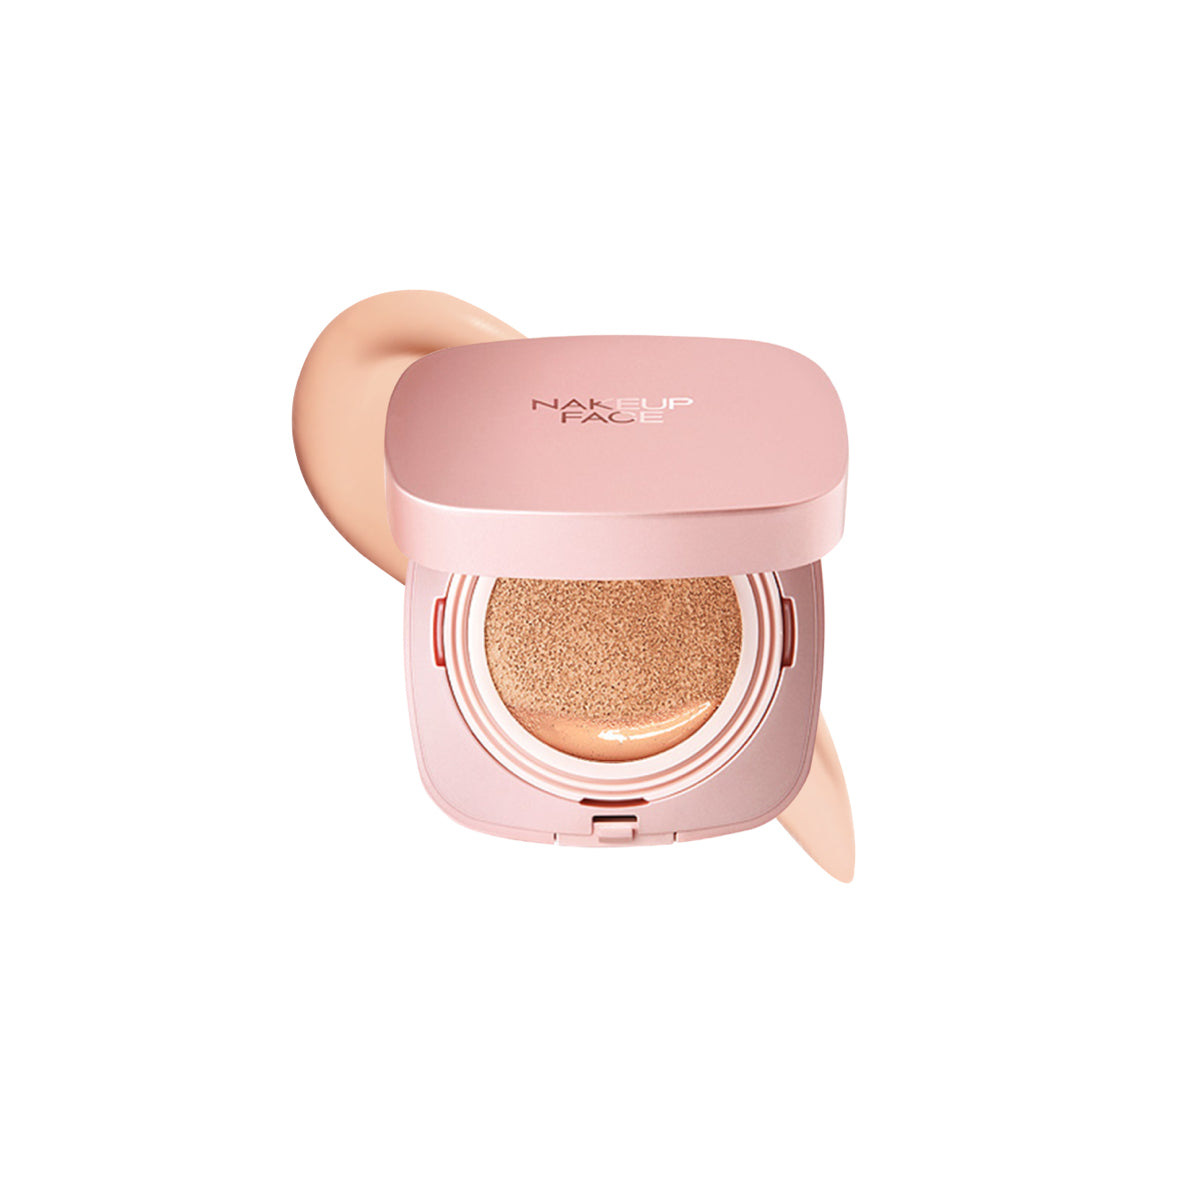 Nakeup Face Coverking Powder Cushion for Oily/Combination Skin - Justrend.sg